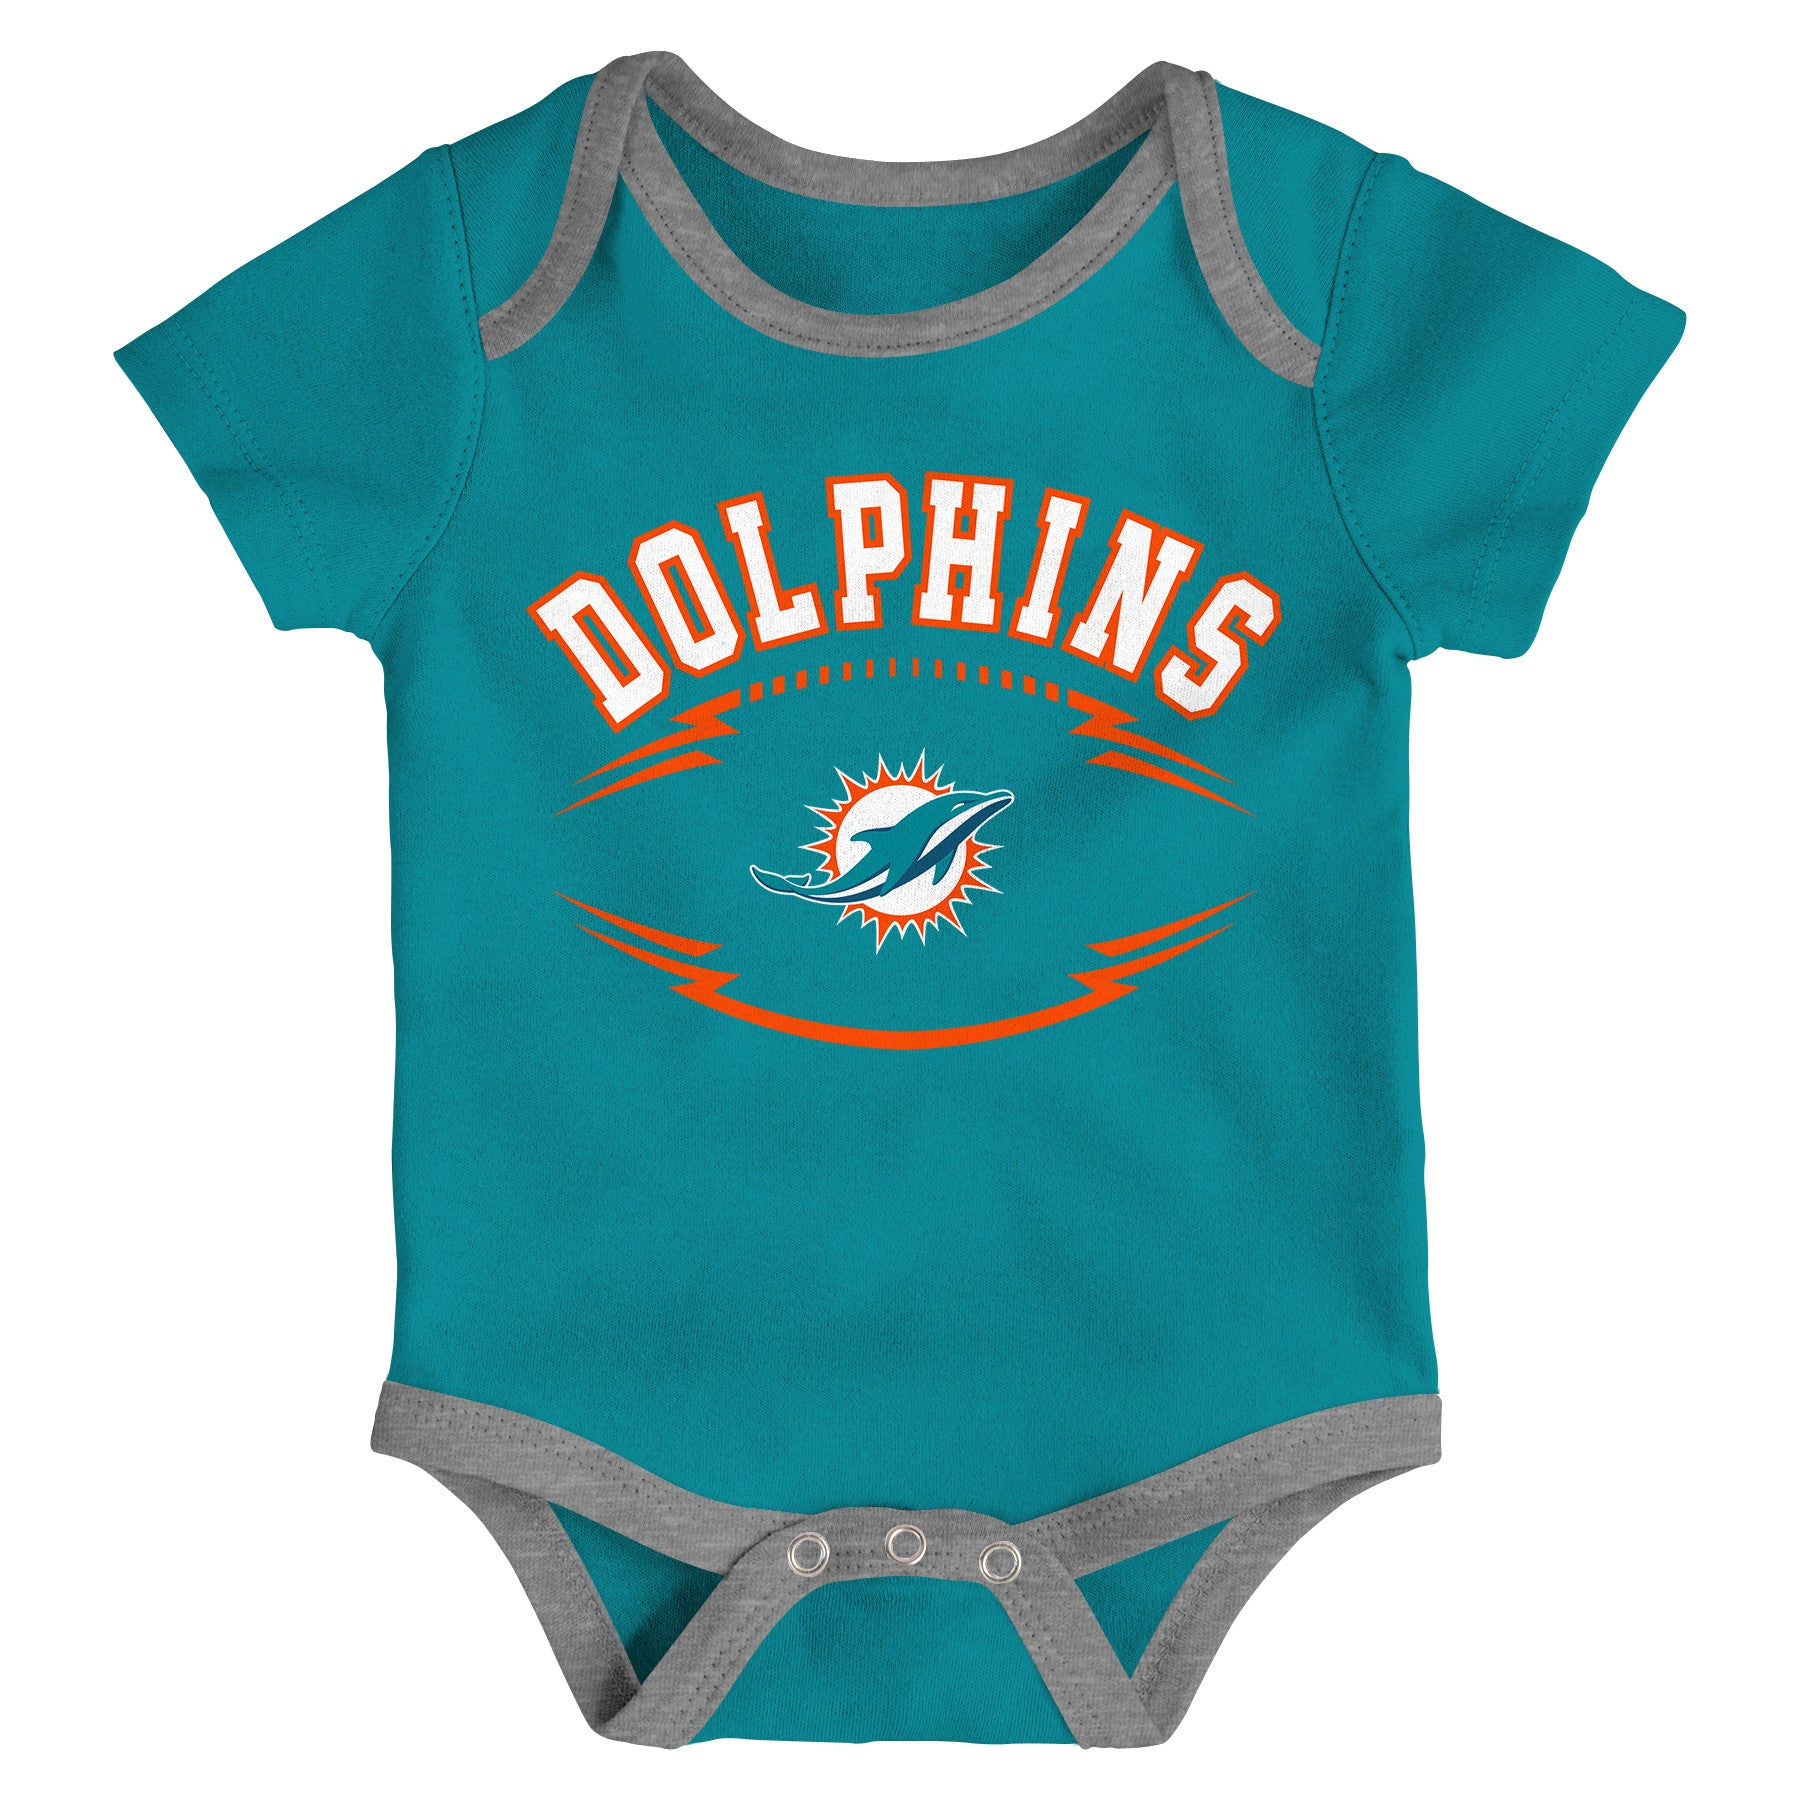 290fc2d0a Miami Dolphins Infant Rookie of the Year Onesie 3 Piece Set ...